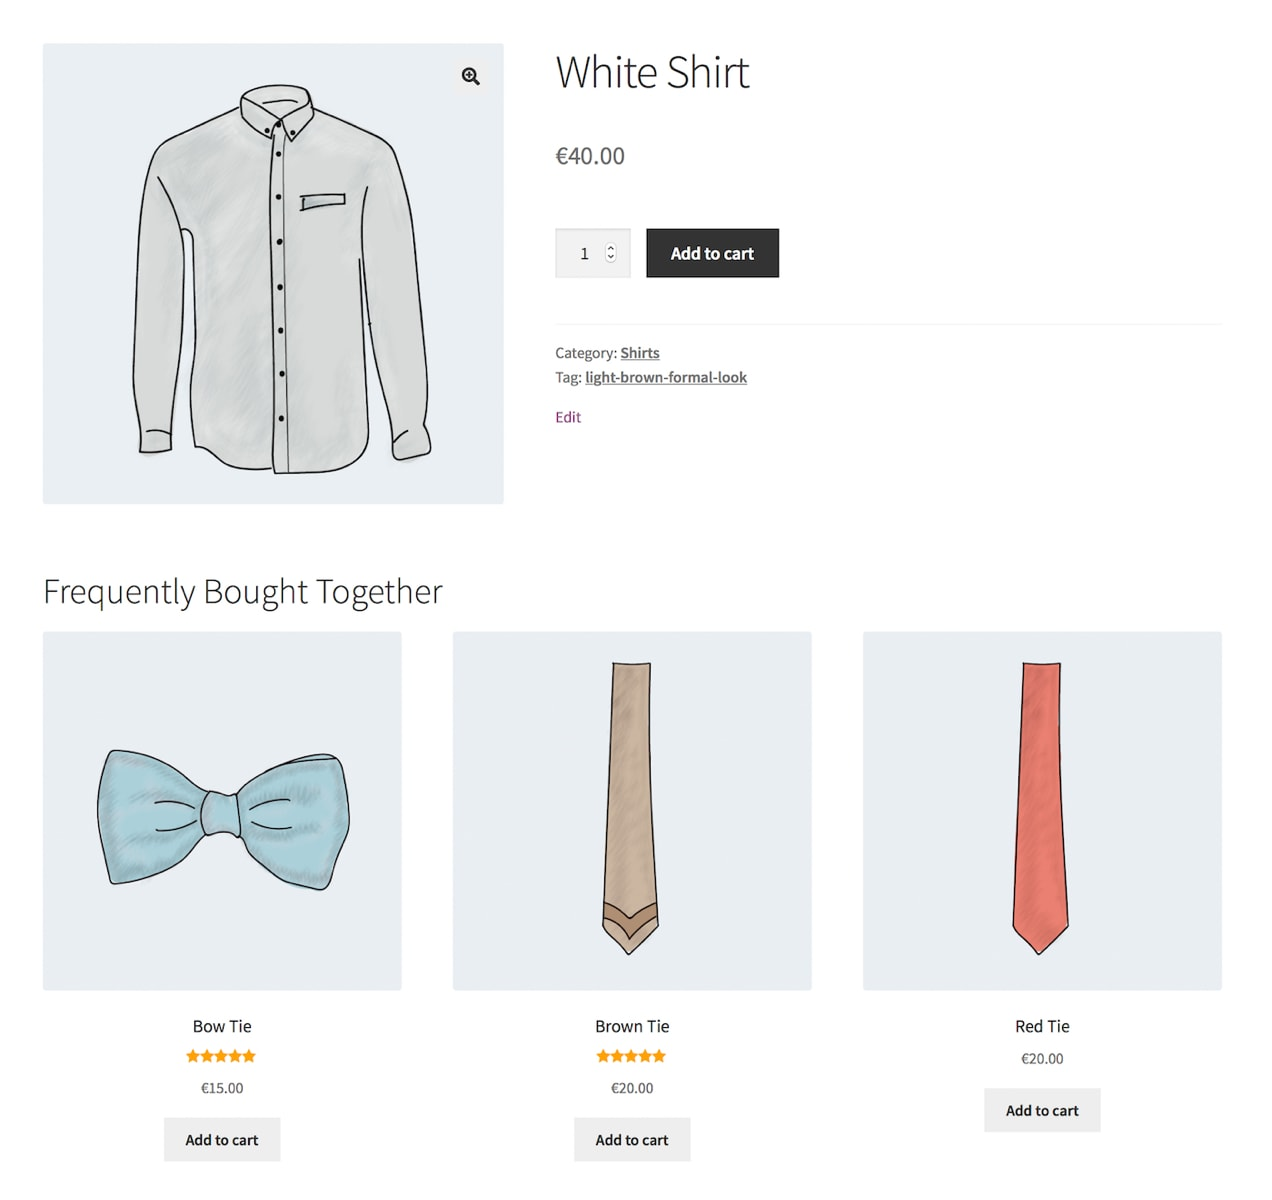 product recommendations shown below a product listing